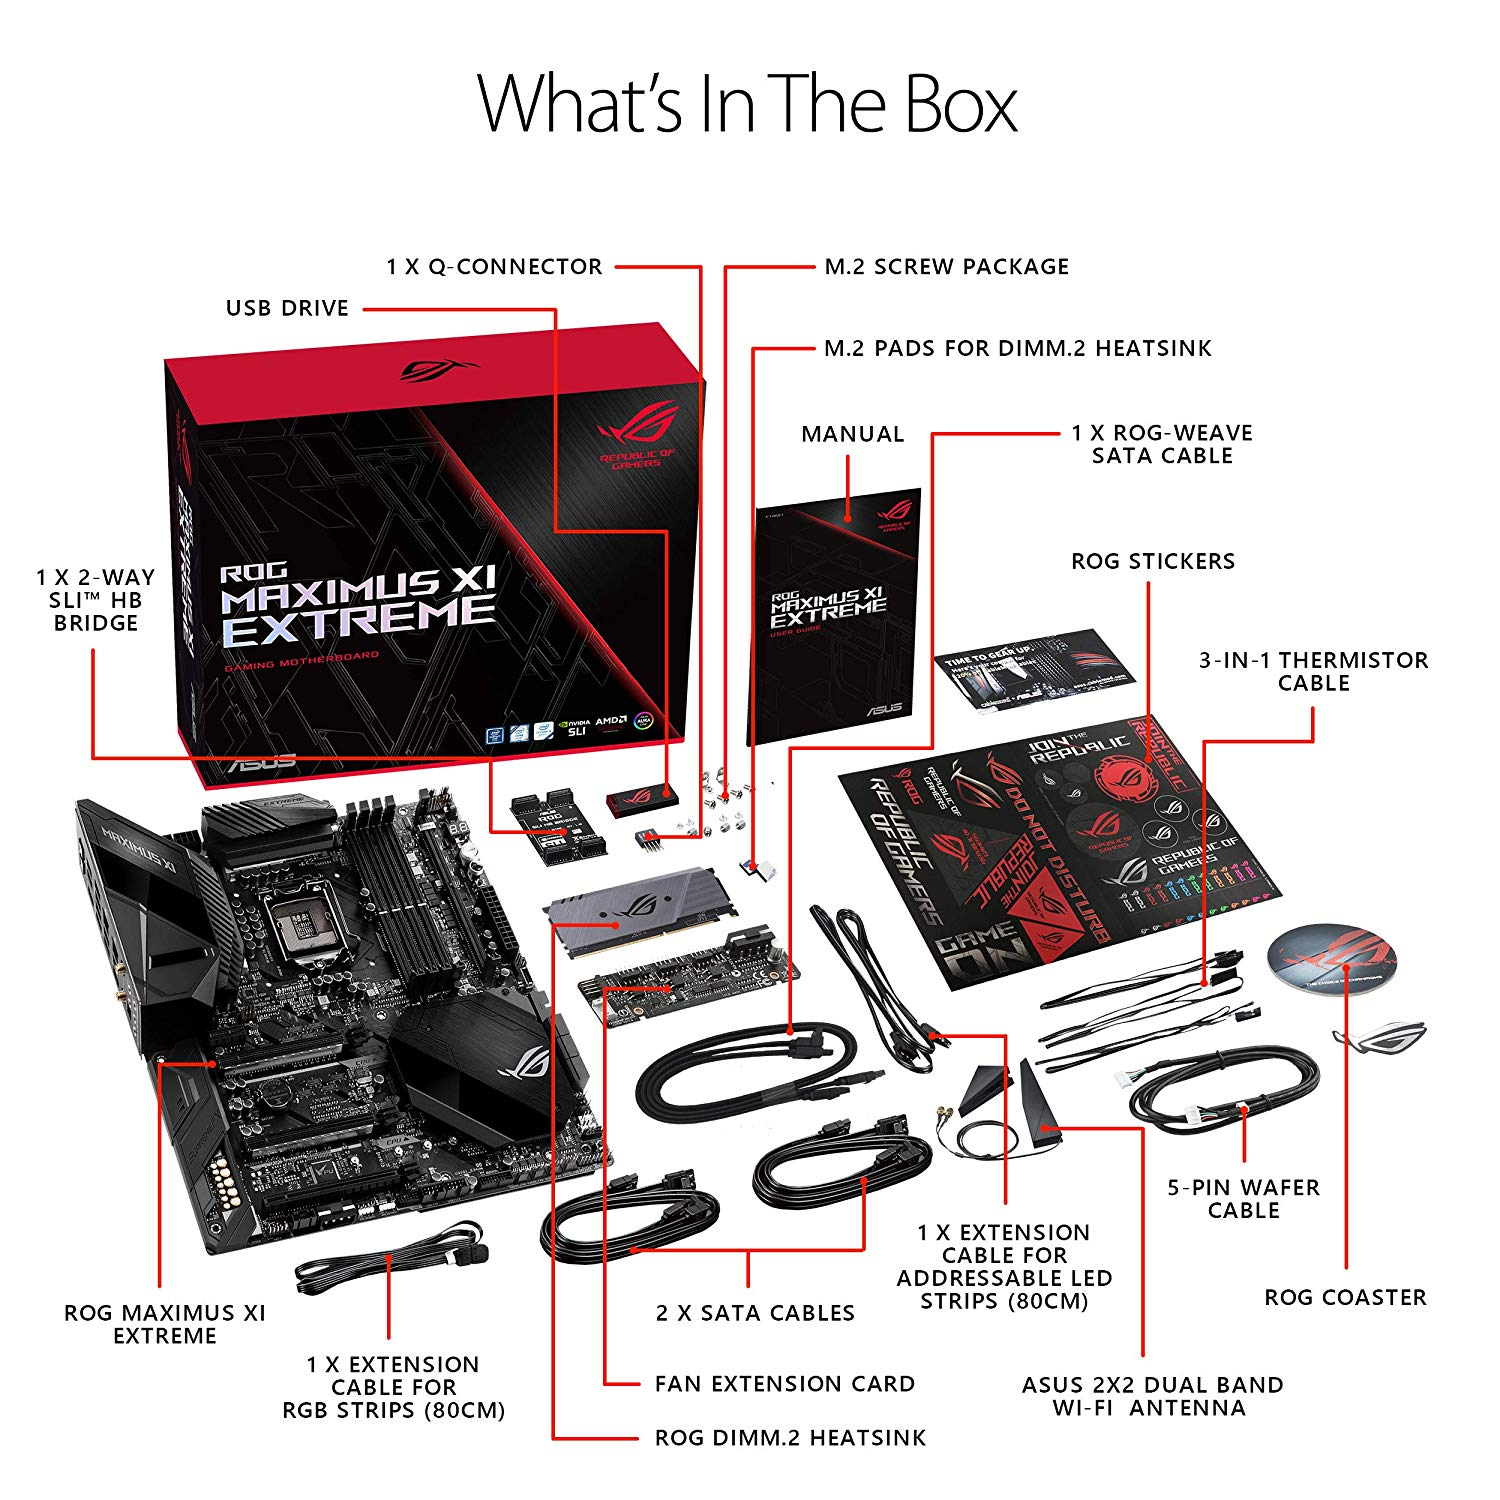 Asus ROG Maximus XI Extreme Z390 Gaming Motherboard LGA1151 (Intel 8th and  9th Gen) EATX DDR4 HDMI M 2 USB 3 1 Gen2 Onboard 802 11ac WiFi